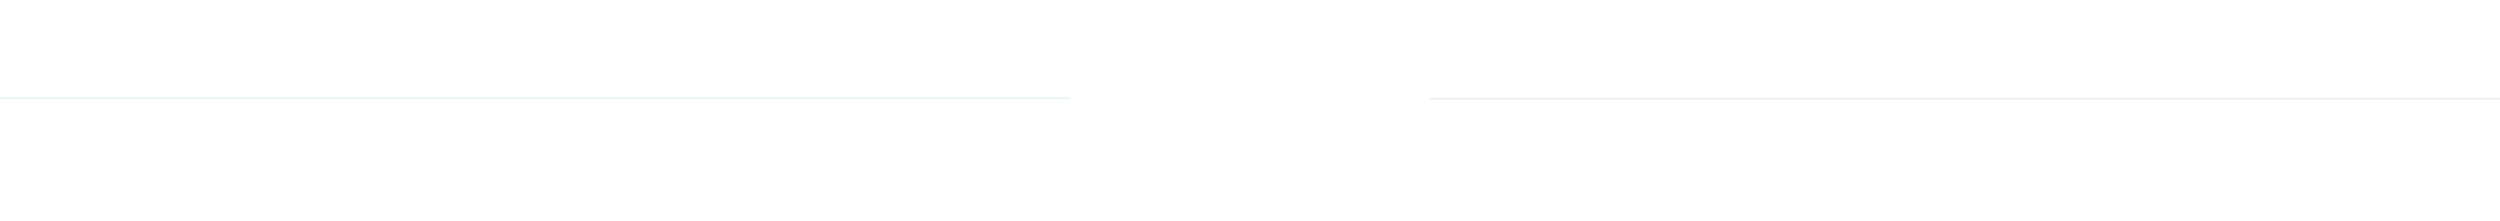 JWP_FooterLogo.png